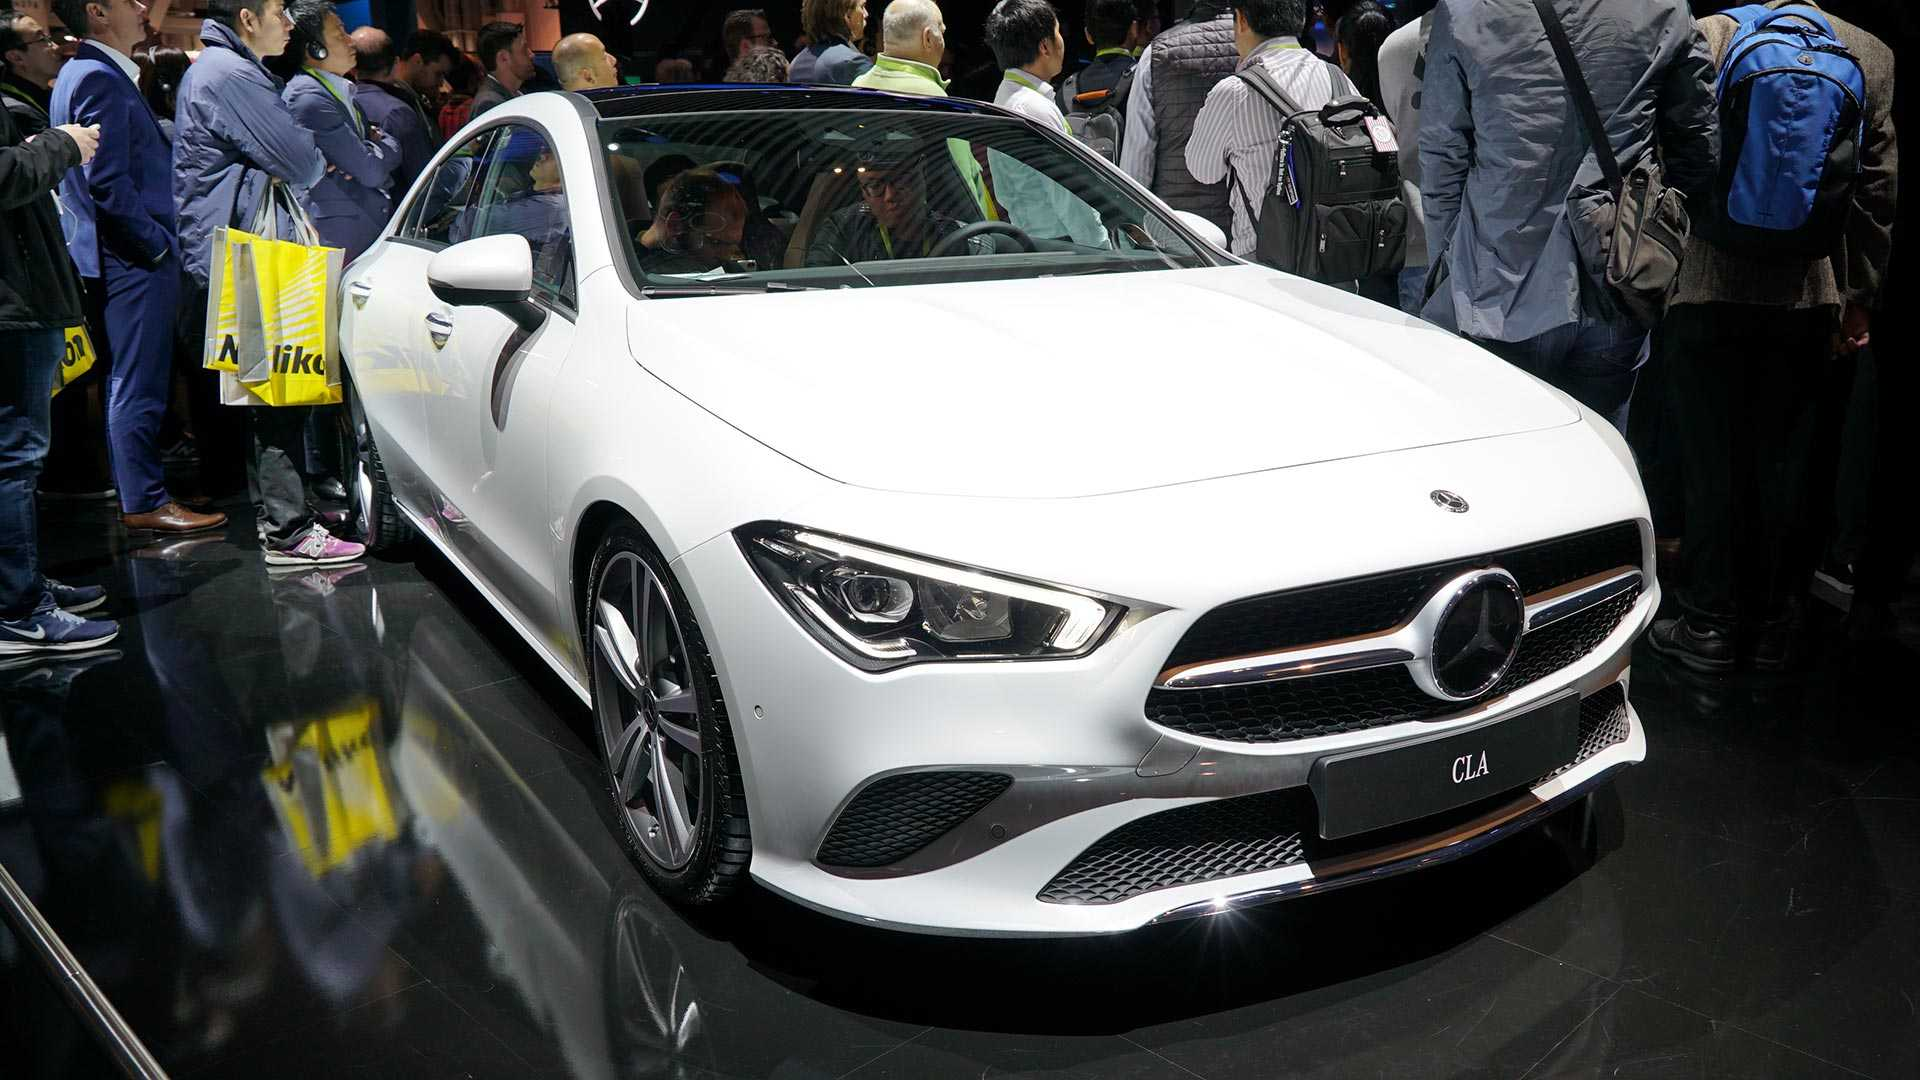 54 Great New Cla Mercedes 2020 Price with New Cla Mercedes 2020